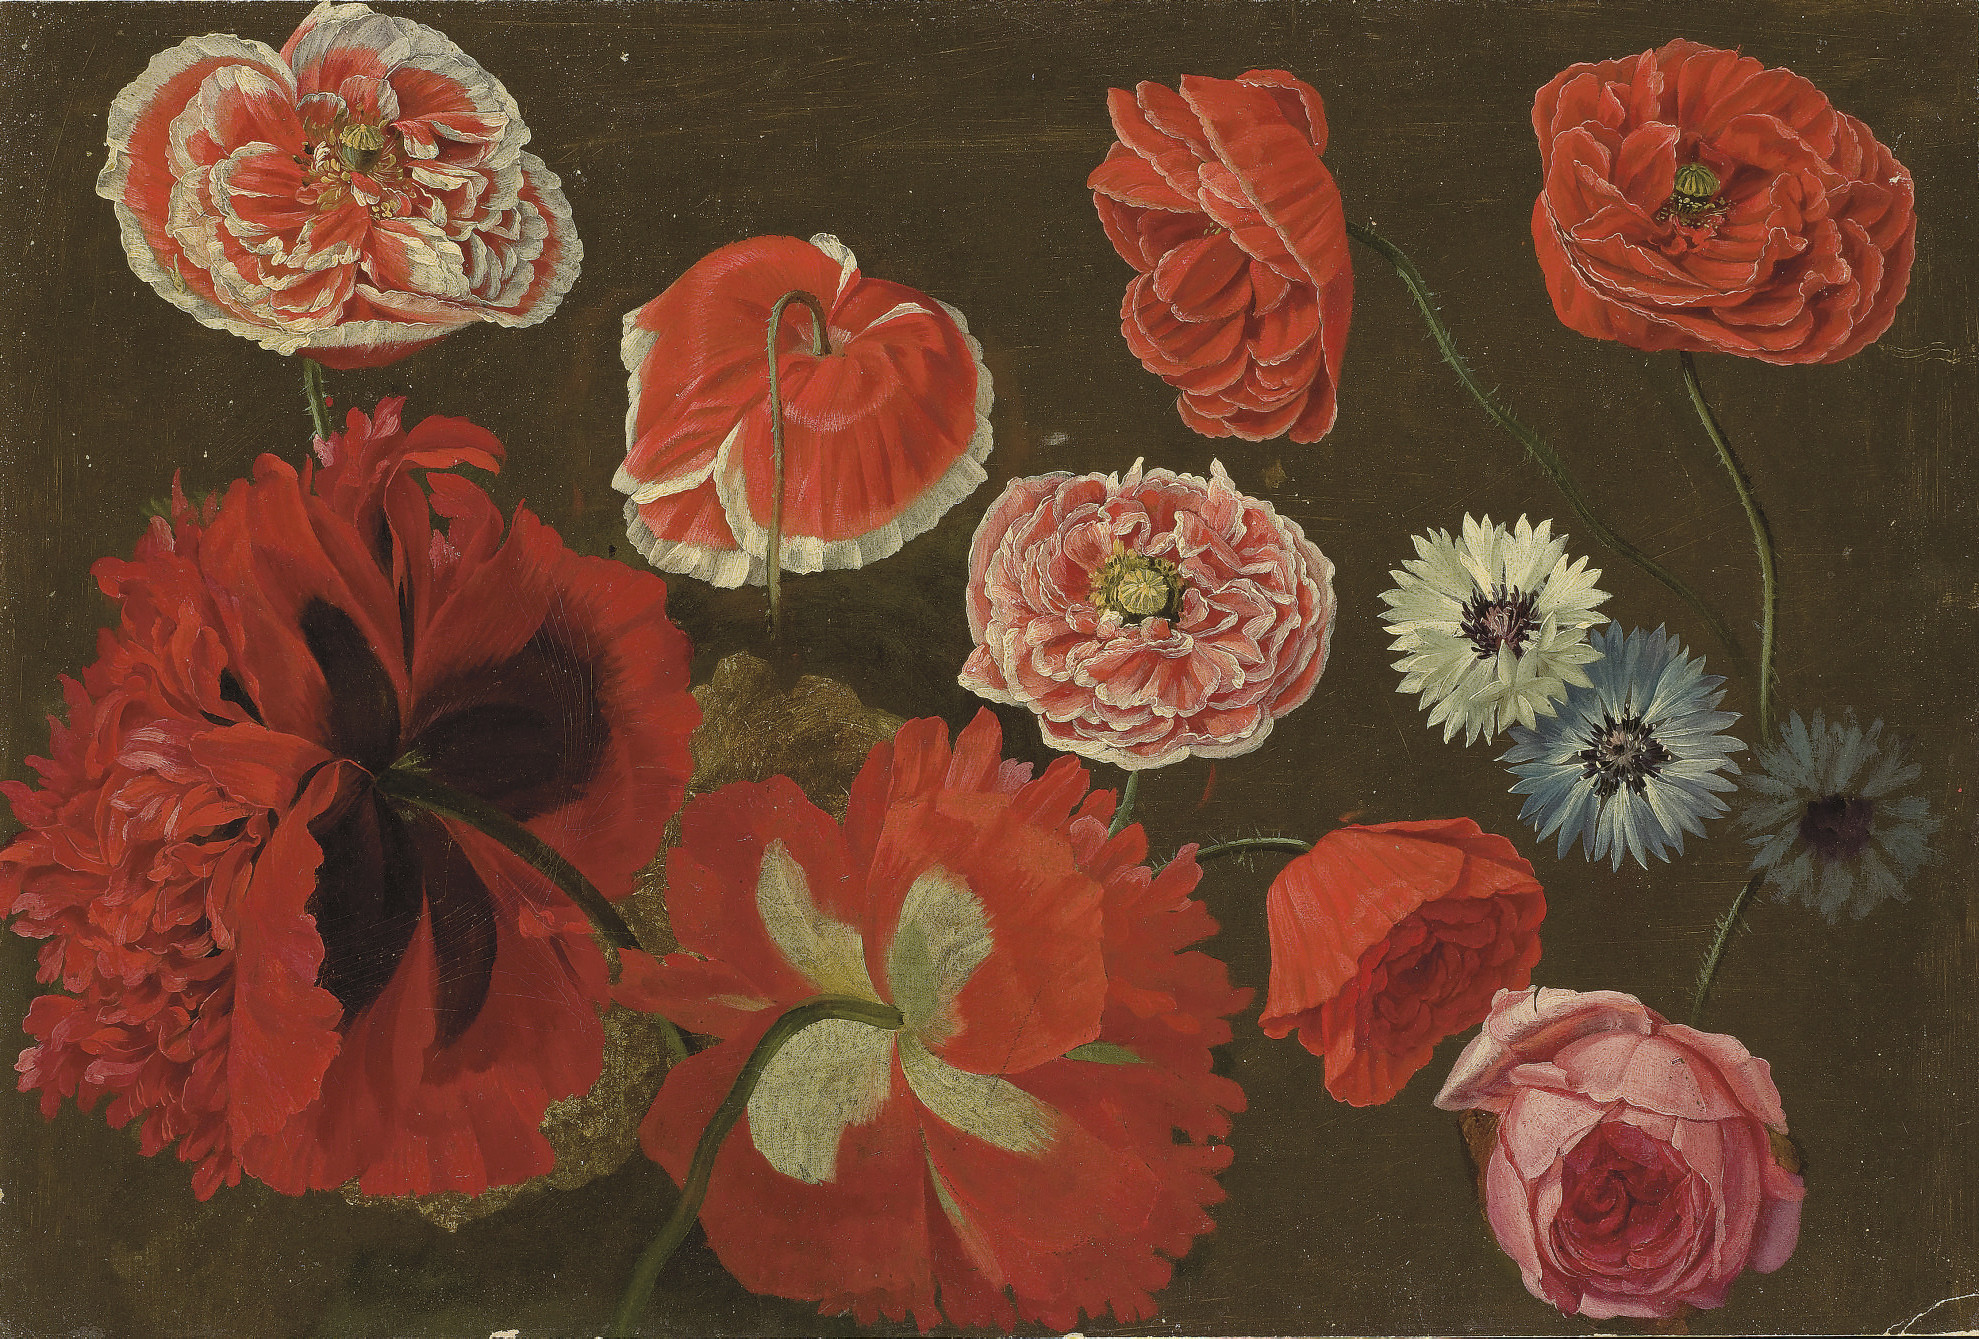 Red, pink and white poppies, cornflowers centaurea and a pink rose